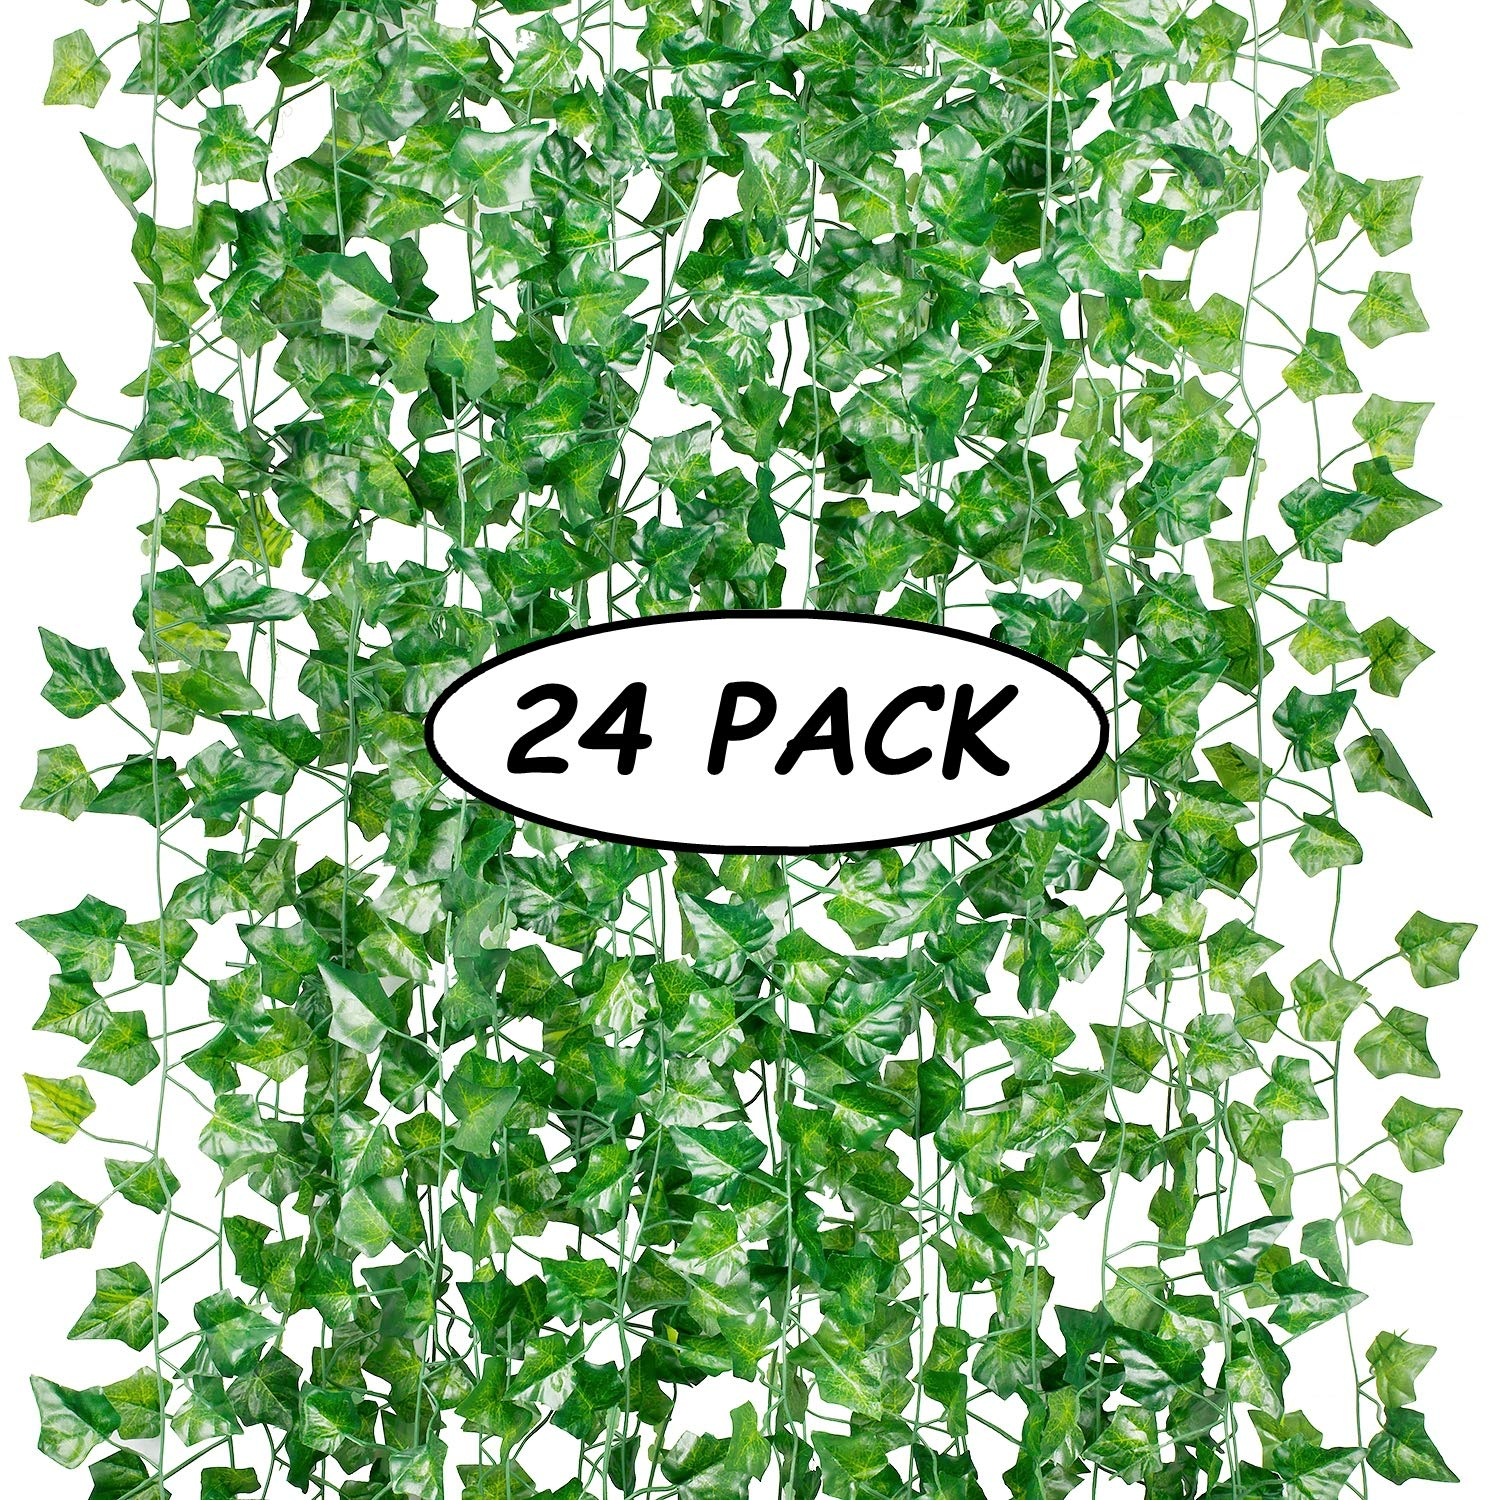 24 Pack (Each 82inch) (Total 160 Feet) Artificial Ivy Greenery Fake Hanging Vine Plants Leaf Garland Hanging for Wedding Party Garden Outdoor Greenery Office Kitchen Home Wall Decoration